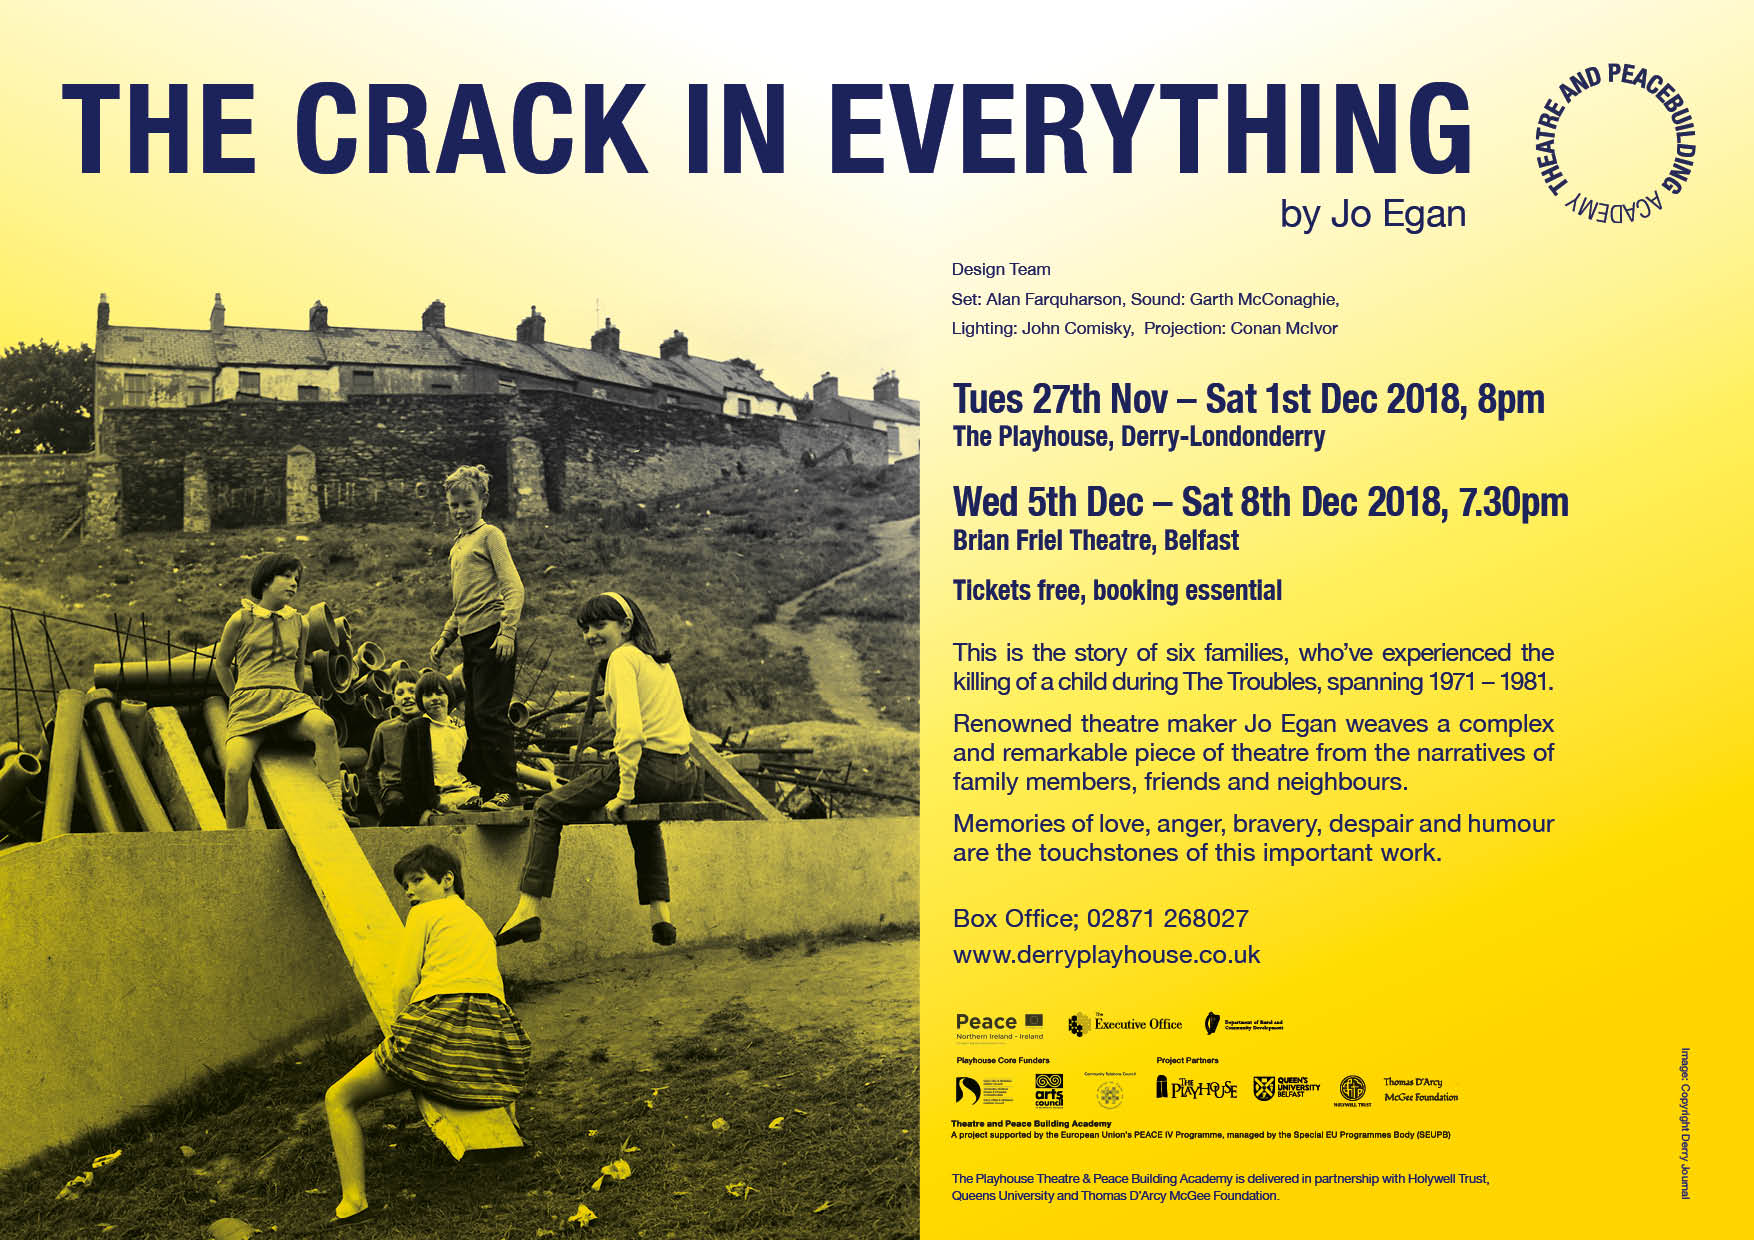 The Crack in Everything: Bearing witness to truth